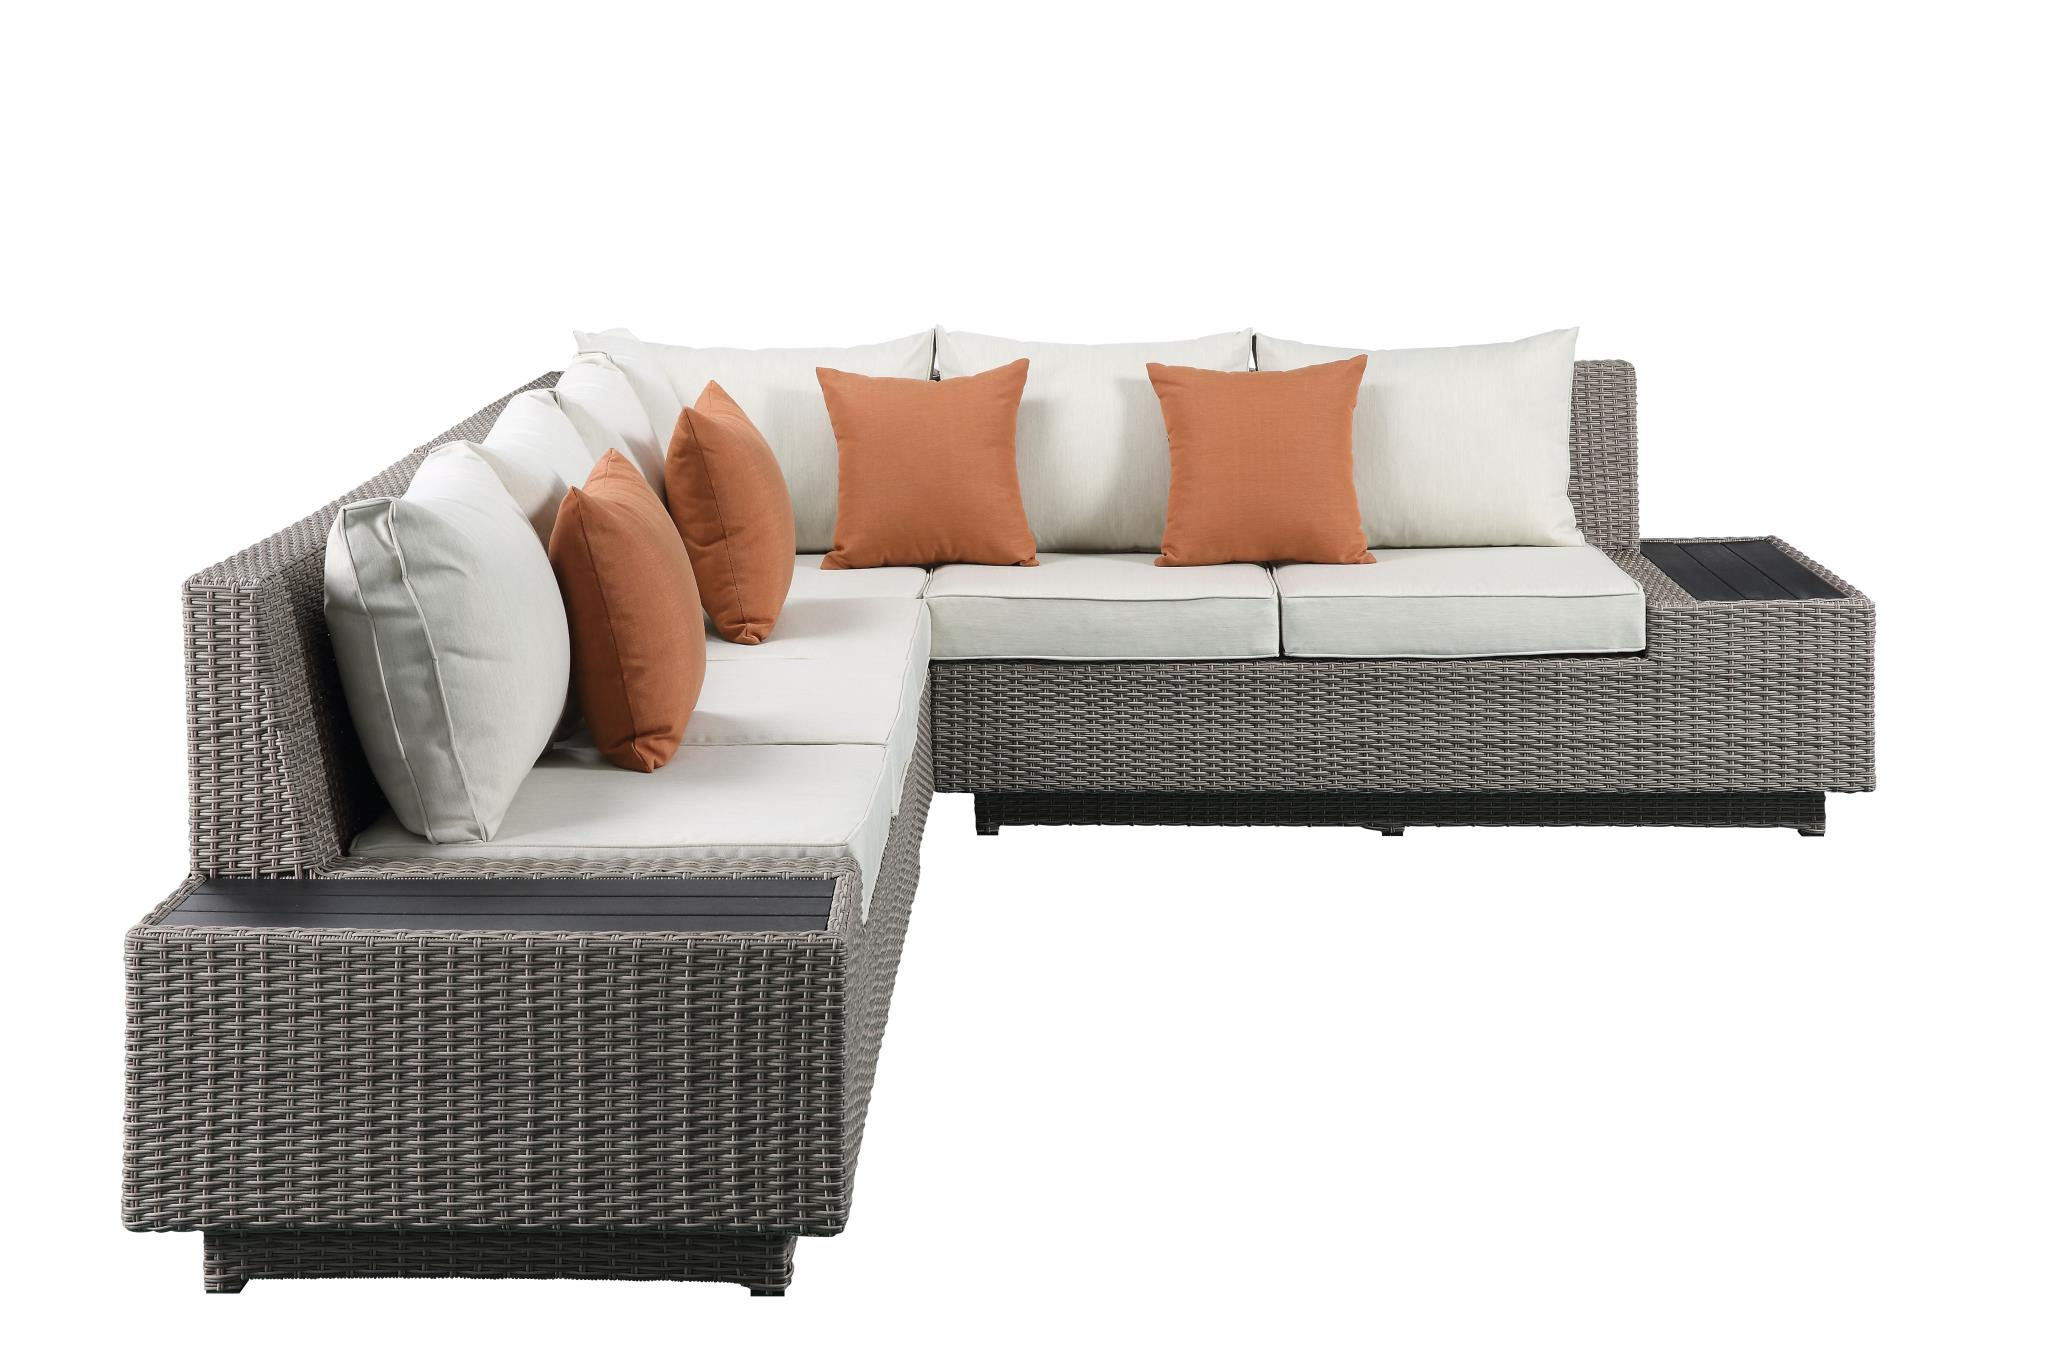 Sectional Sofa Side View